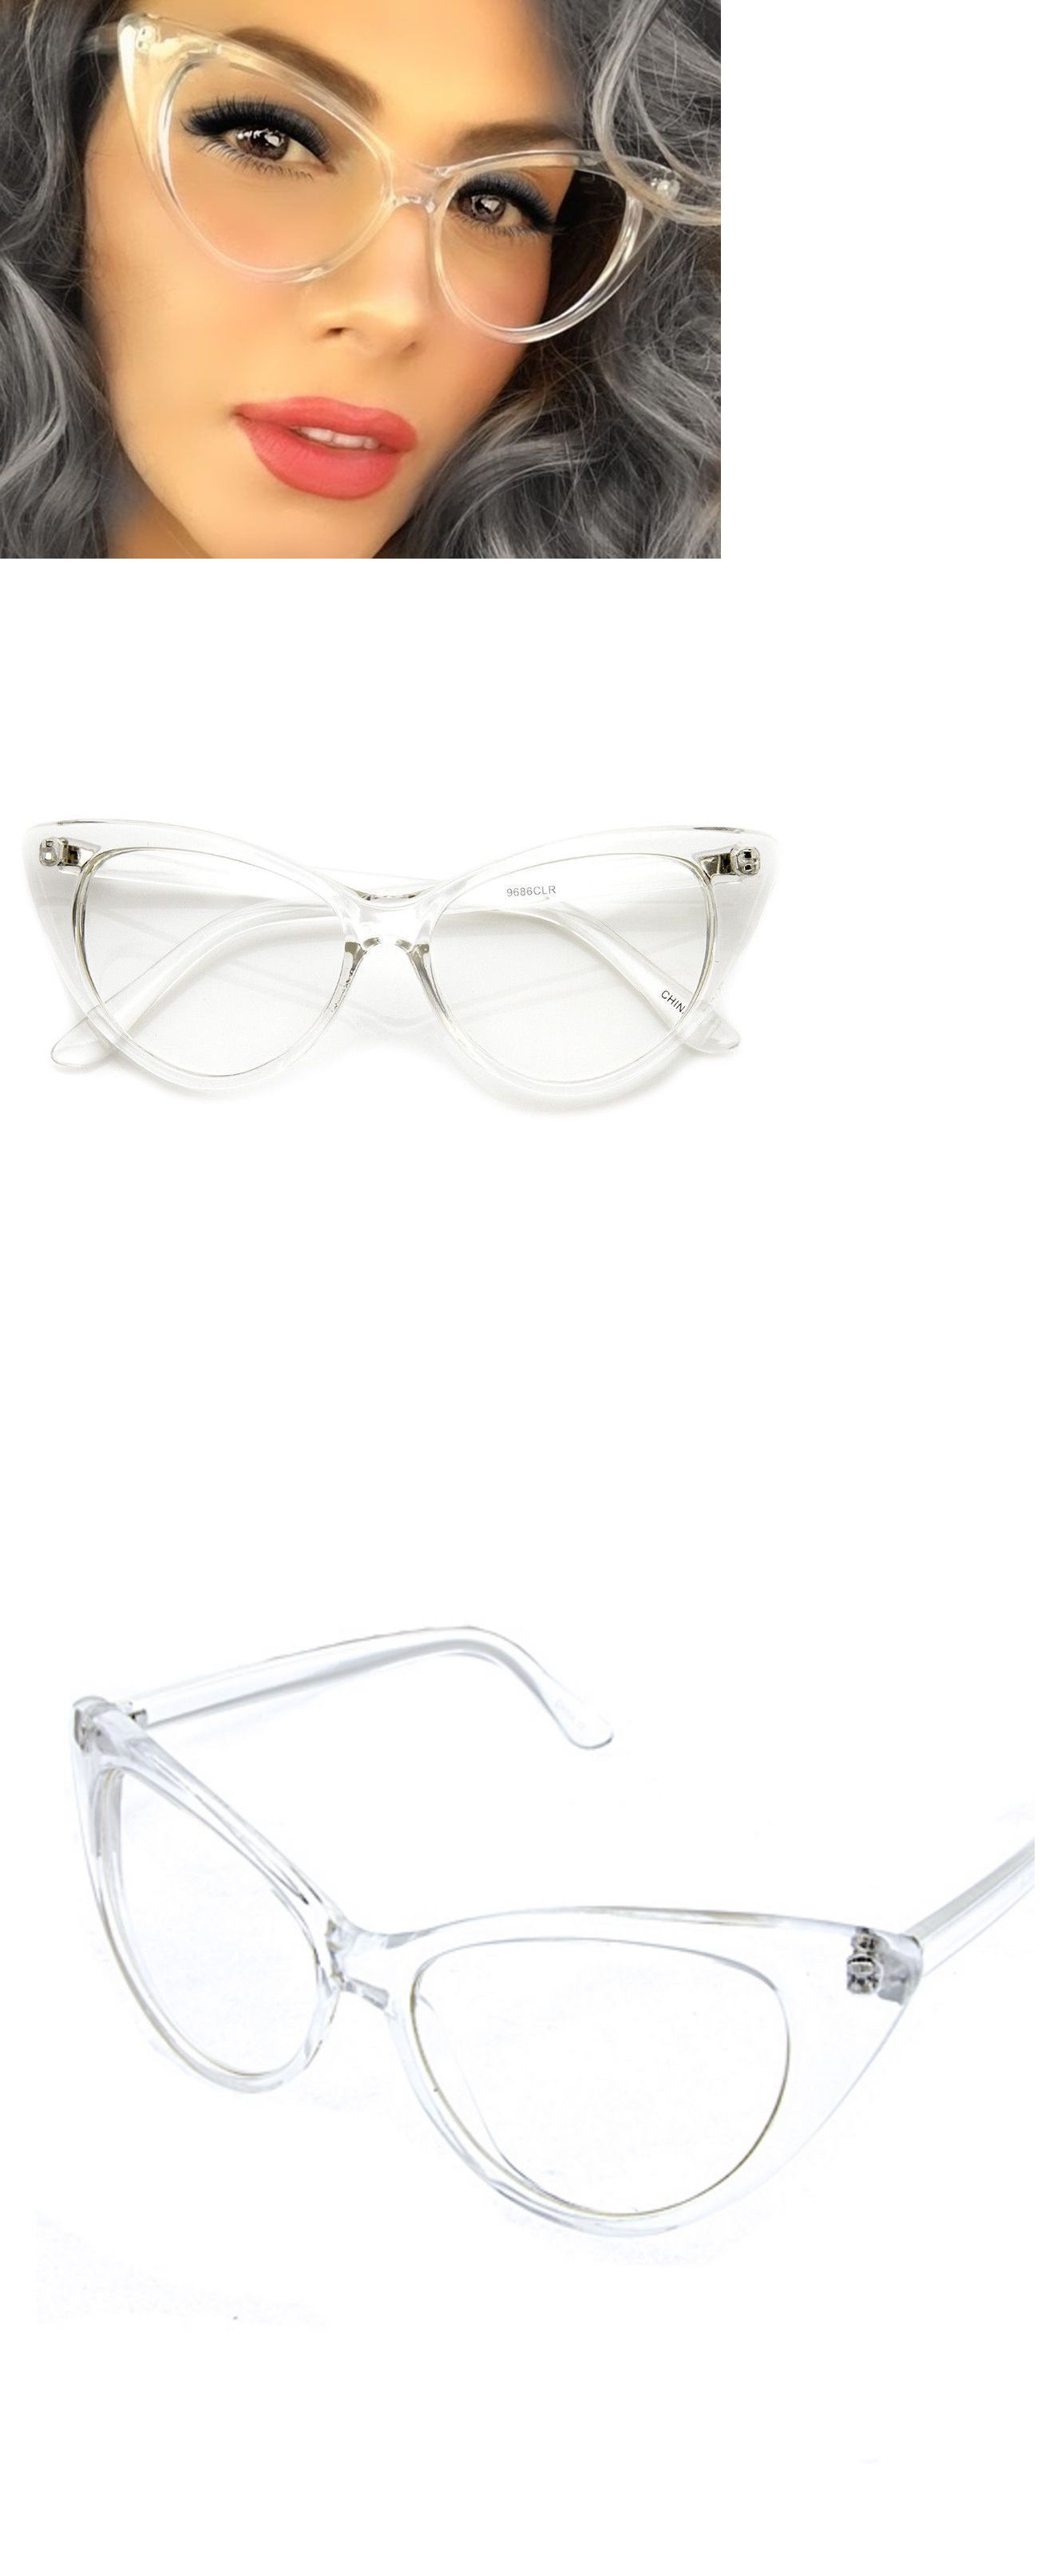 b91ce07b36cf Sunglasses and Sunglasses Accessories 179247: Women Vintage Retro 60S Cat  Eye Style Clear Lens Eye